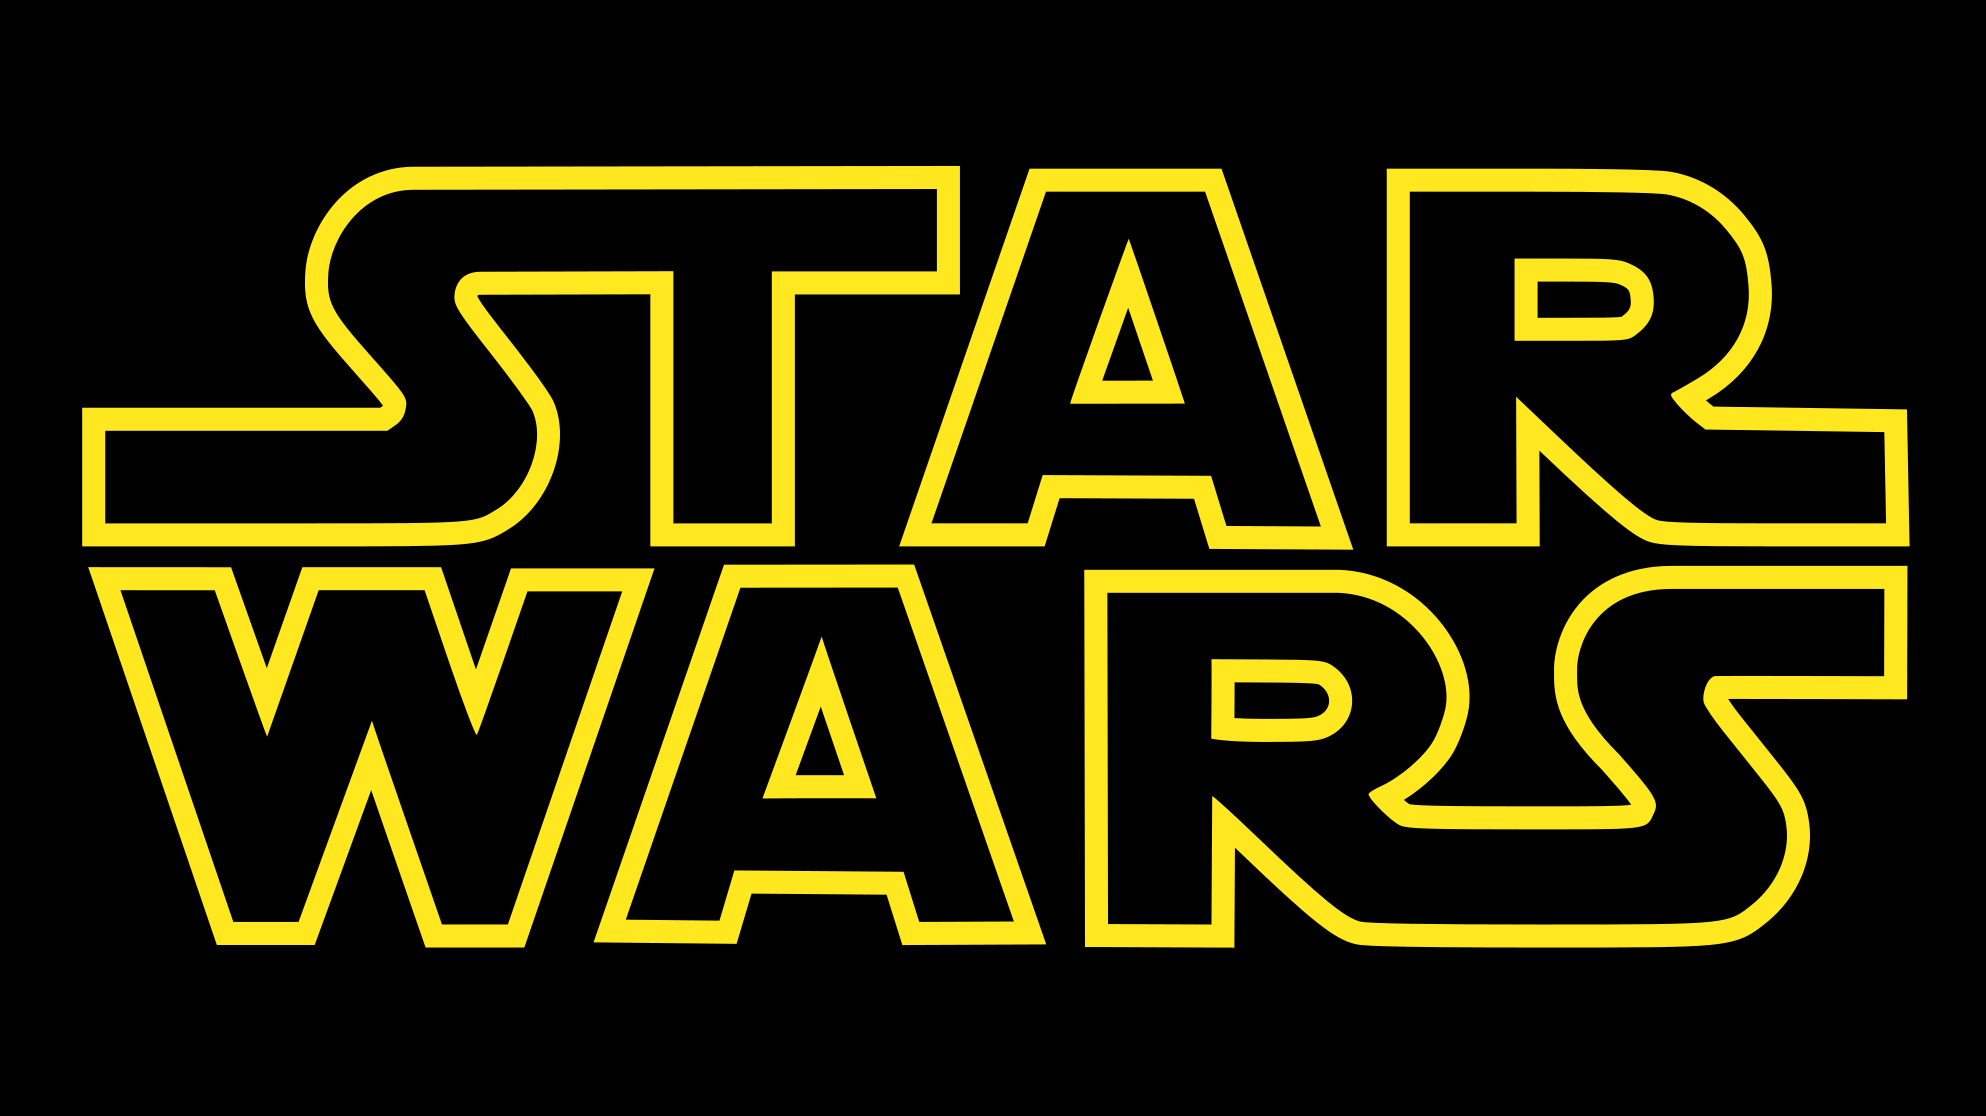 Why the Star Wars saga endures after 40 years.